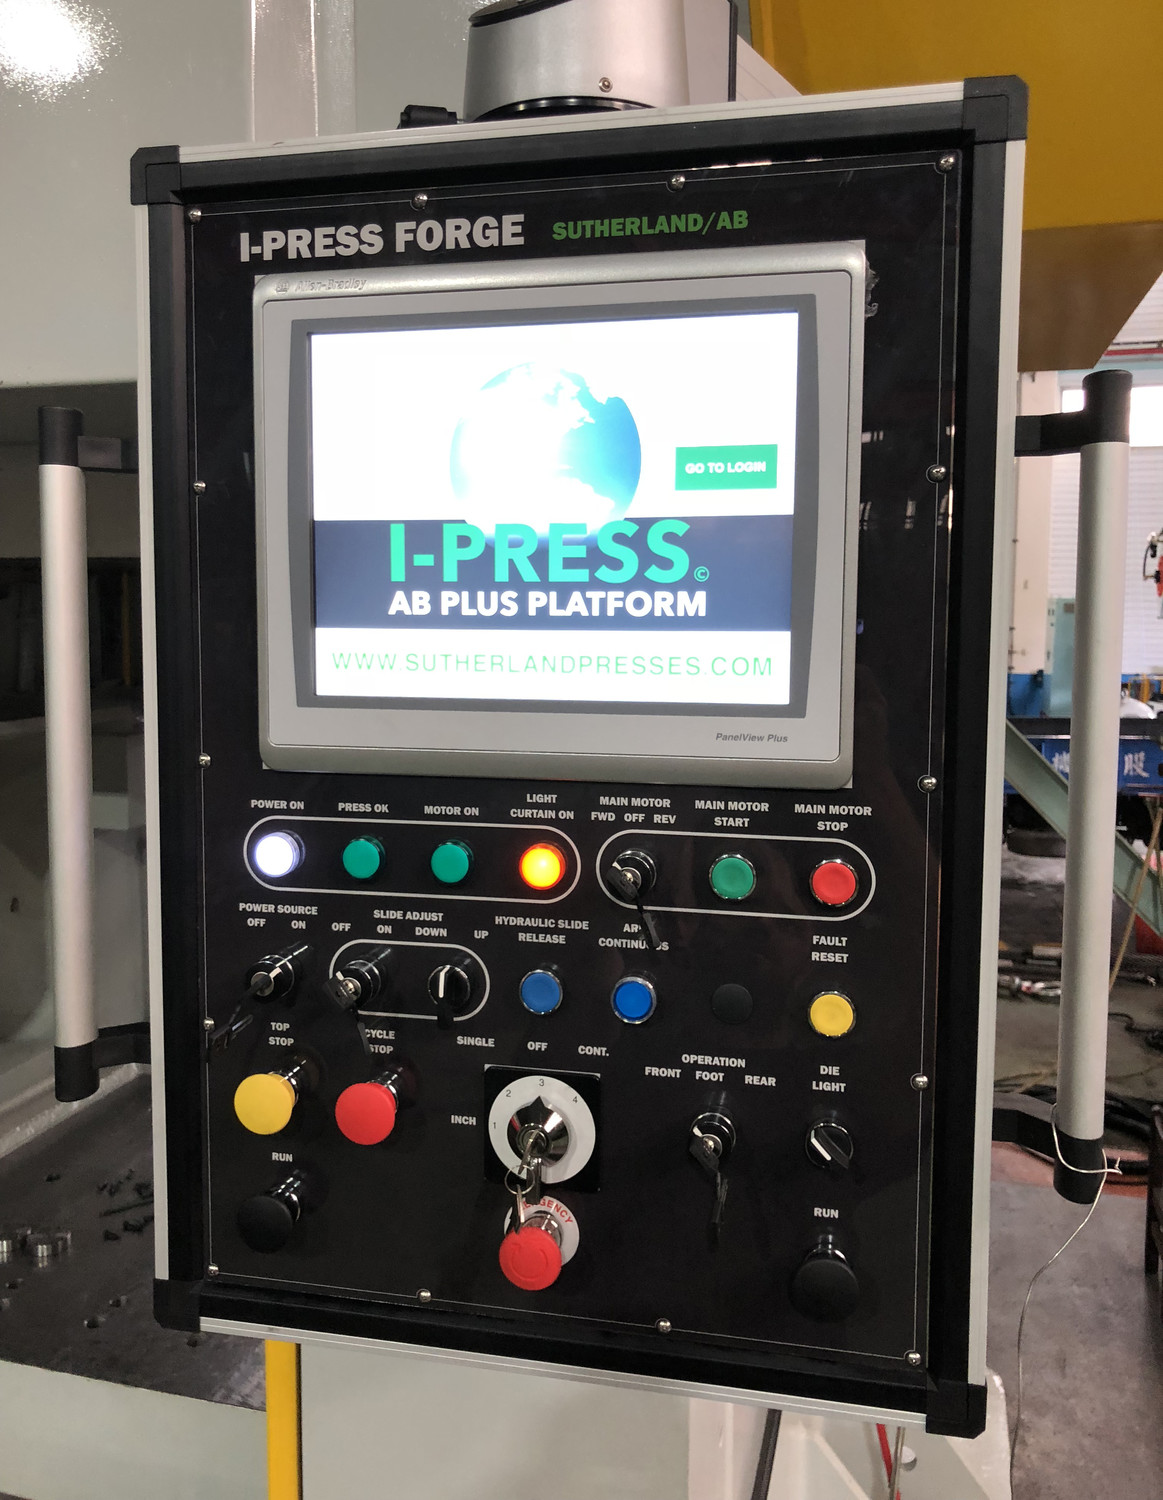 Sutherland Controls for Mechanical Forge Presses